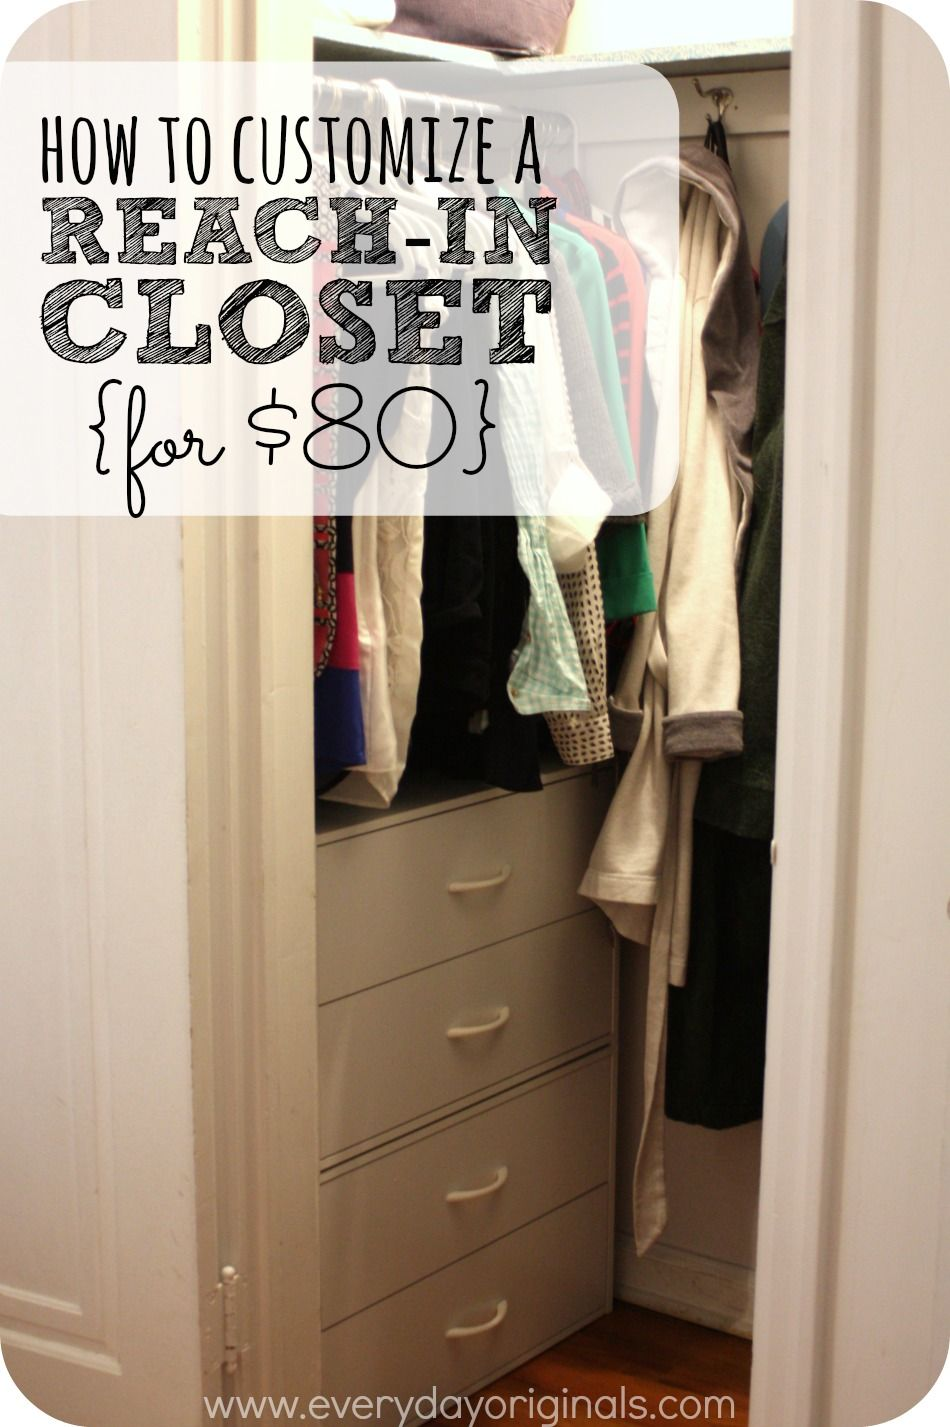 How To Customize A Reach In Closet For 80 With Images Small